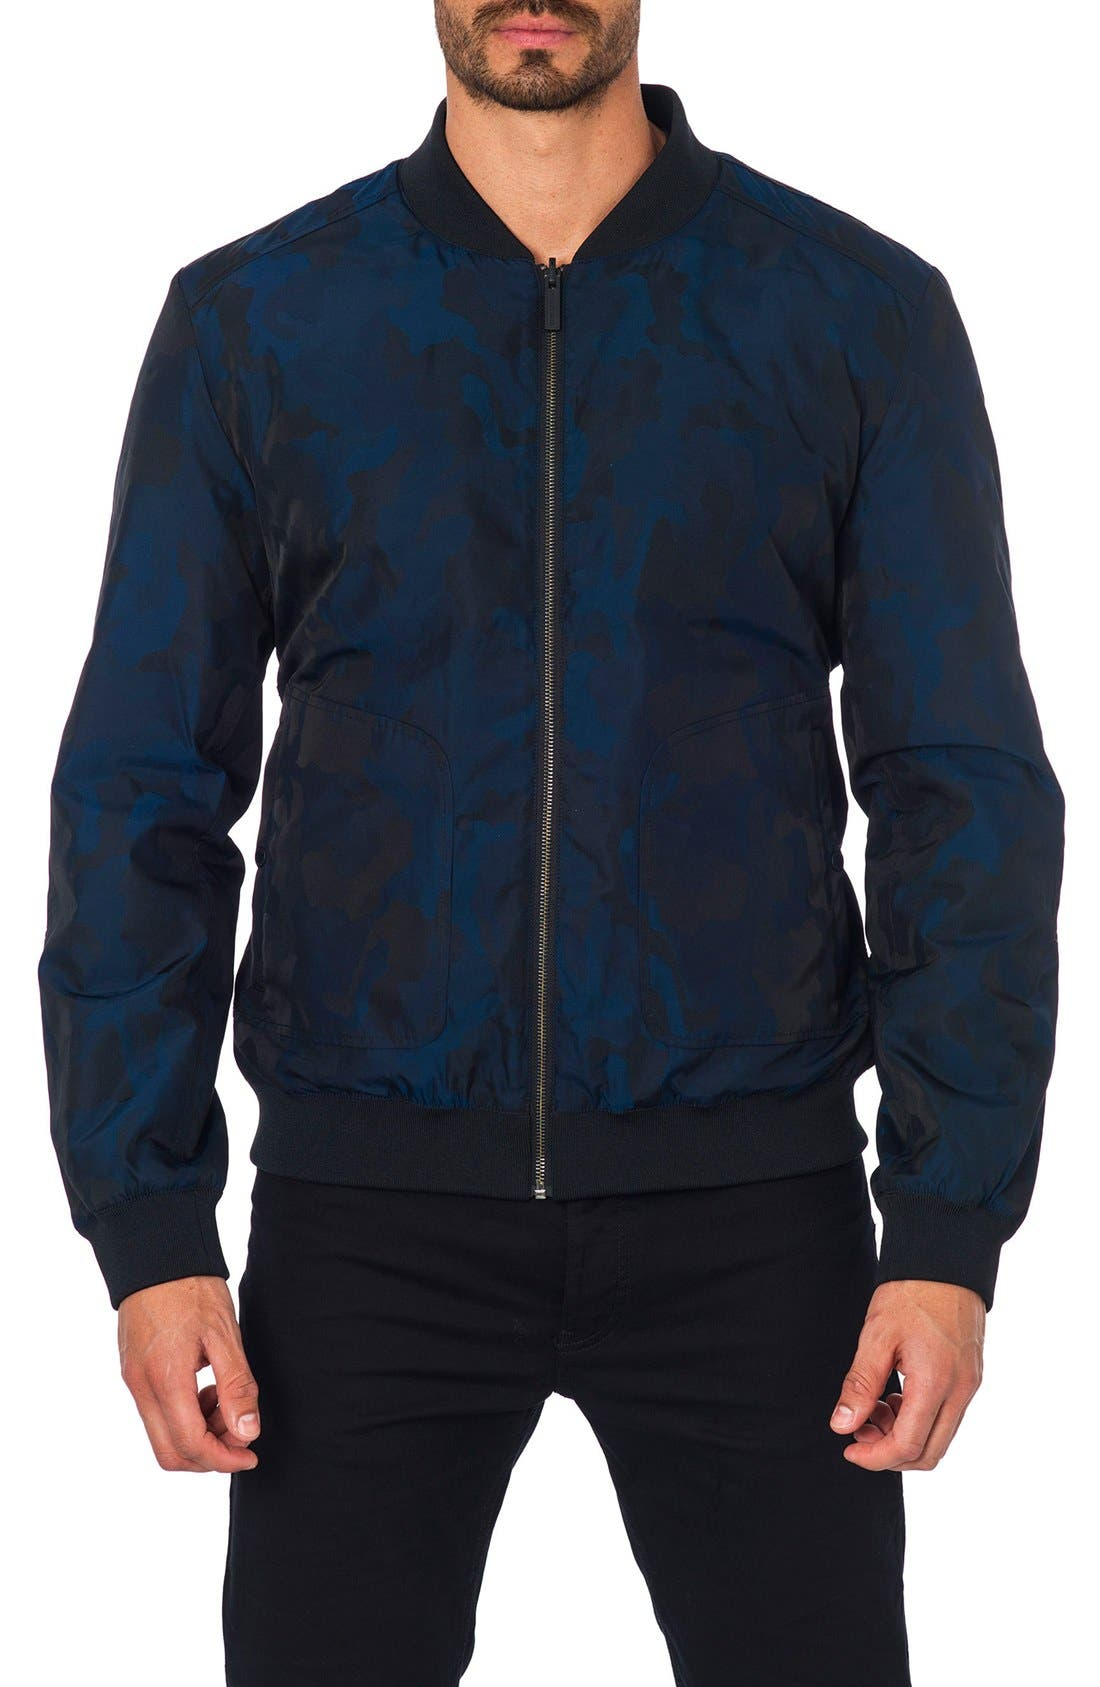 New York Reversible Bomber Jacket,                         Main,                         color, 410